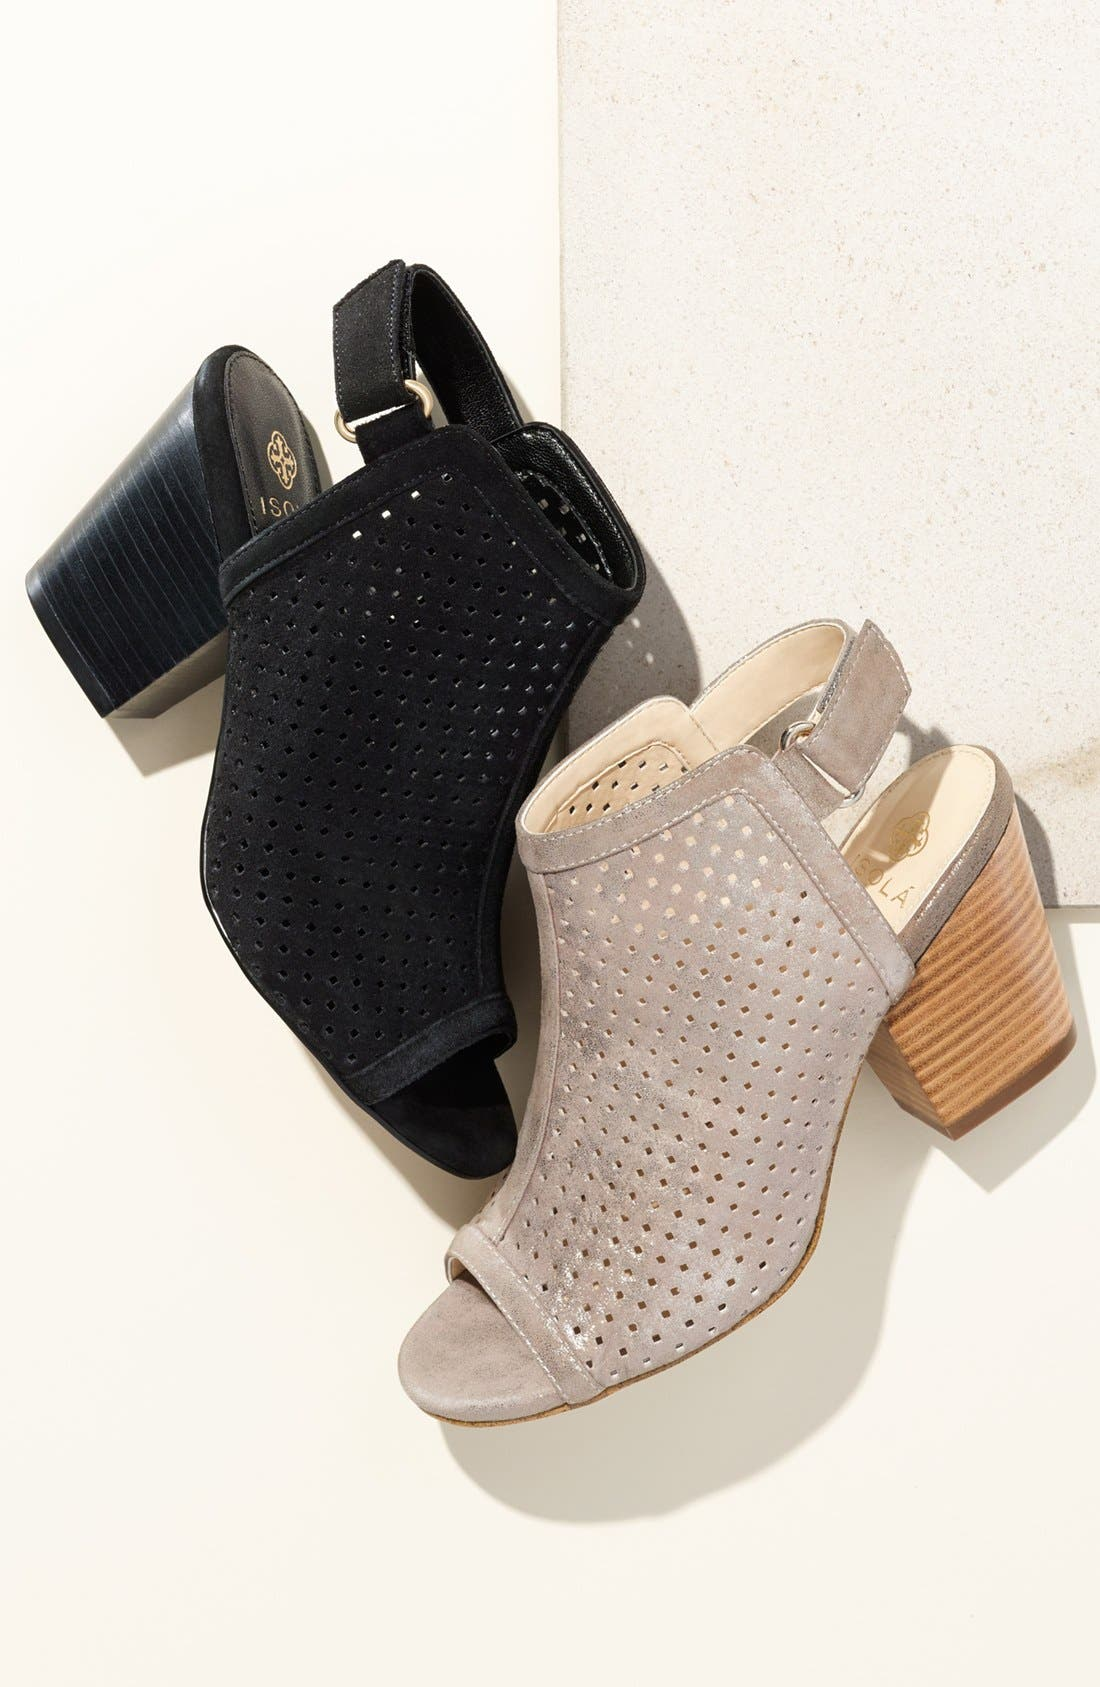 'Lora' Perforated Open-Toe Bootie Sandal,                             Alternate thumbnail 7, color,                             BARLEY LEATHER